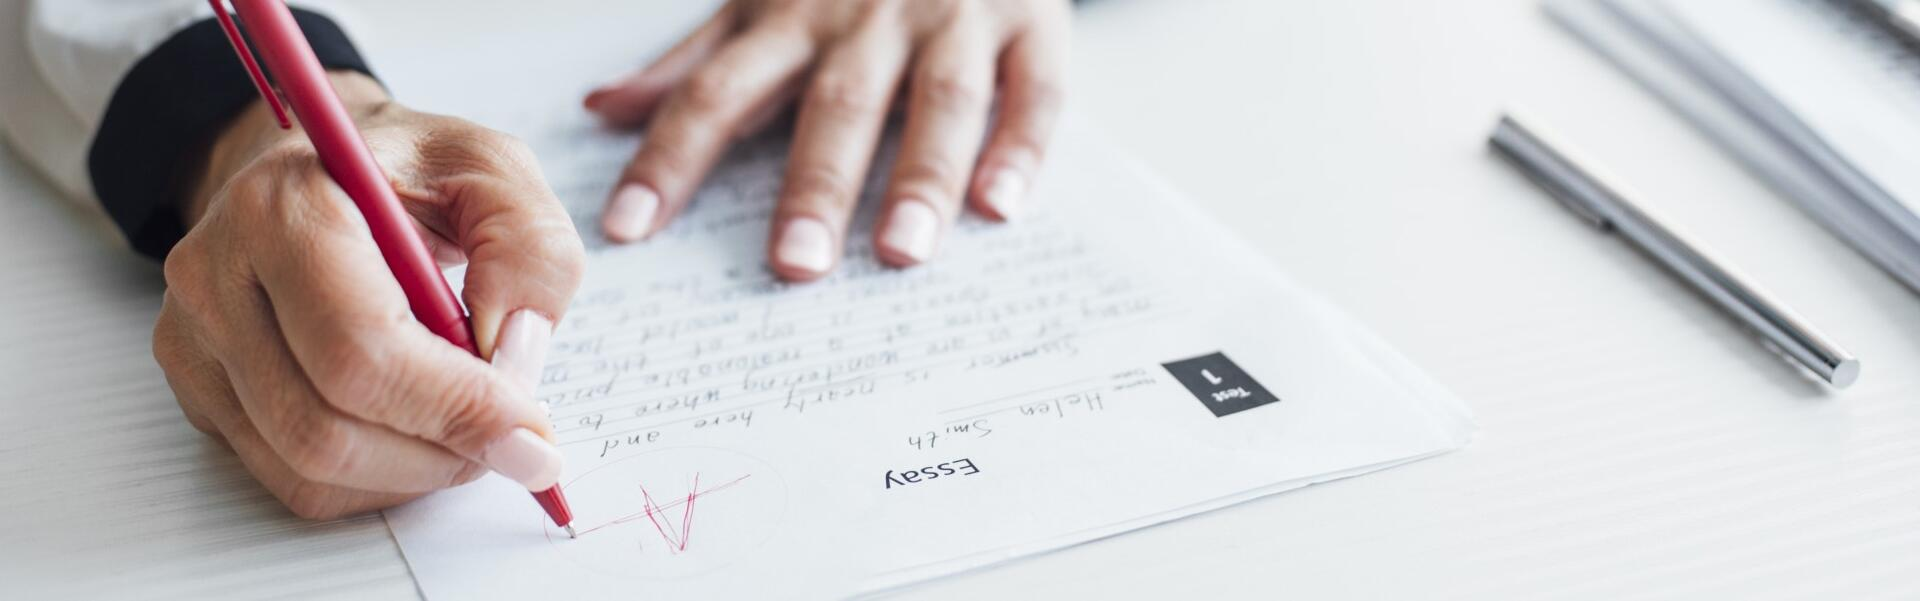 How to Keep Grading from Taking Over Your Life